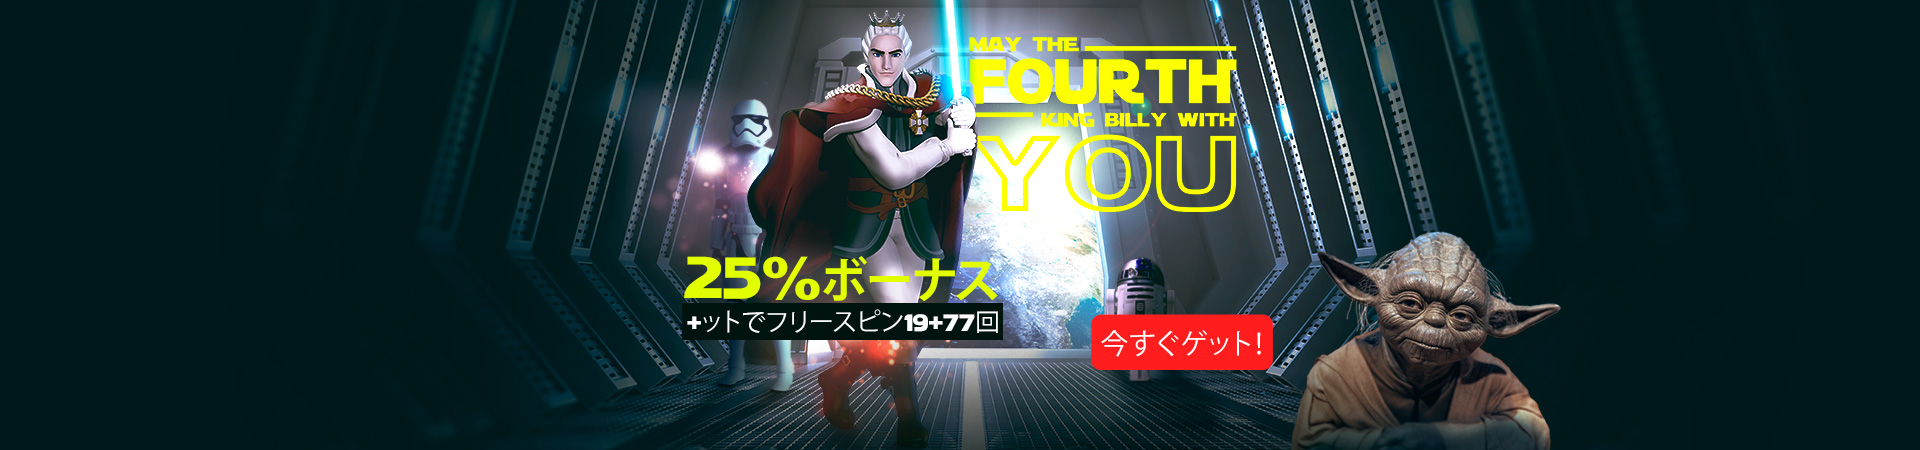 2021 04 King Billy Japanese May The 4 Th King Billy With You 1920x450